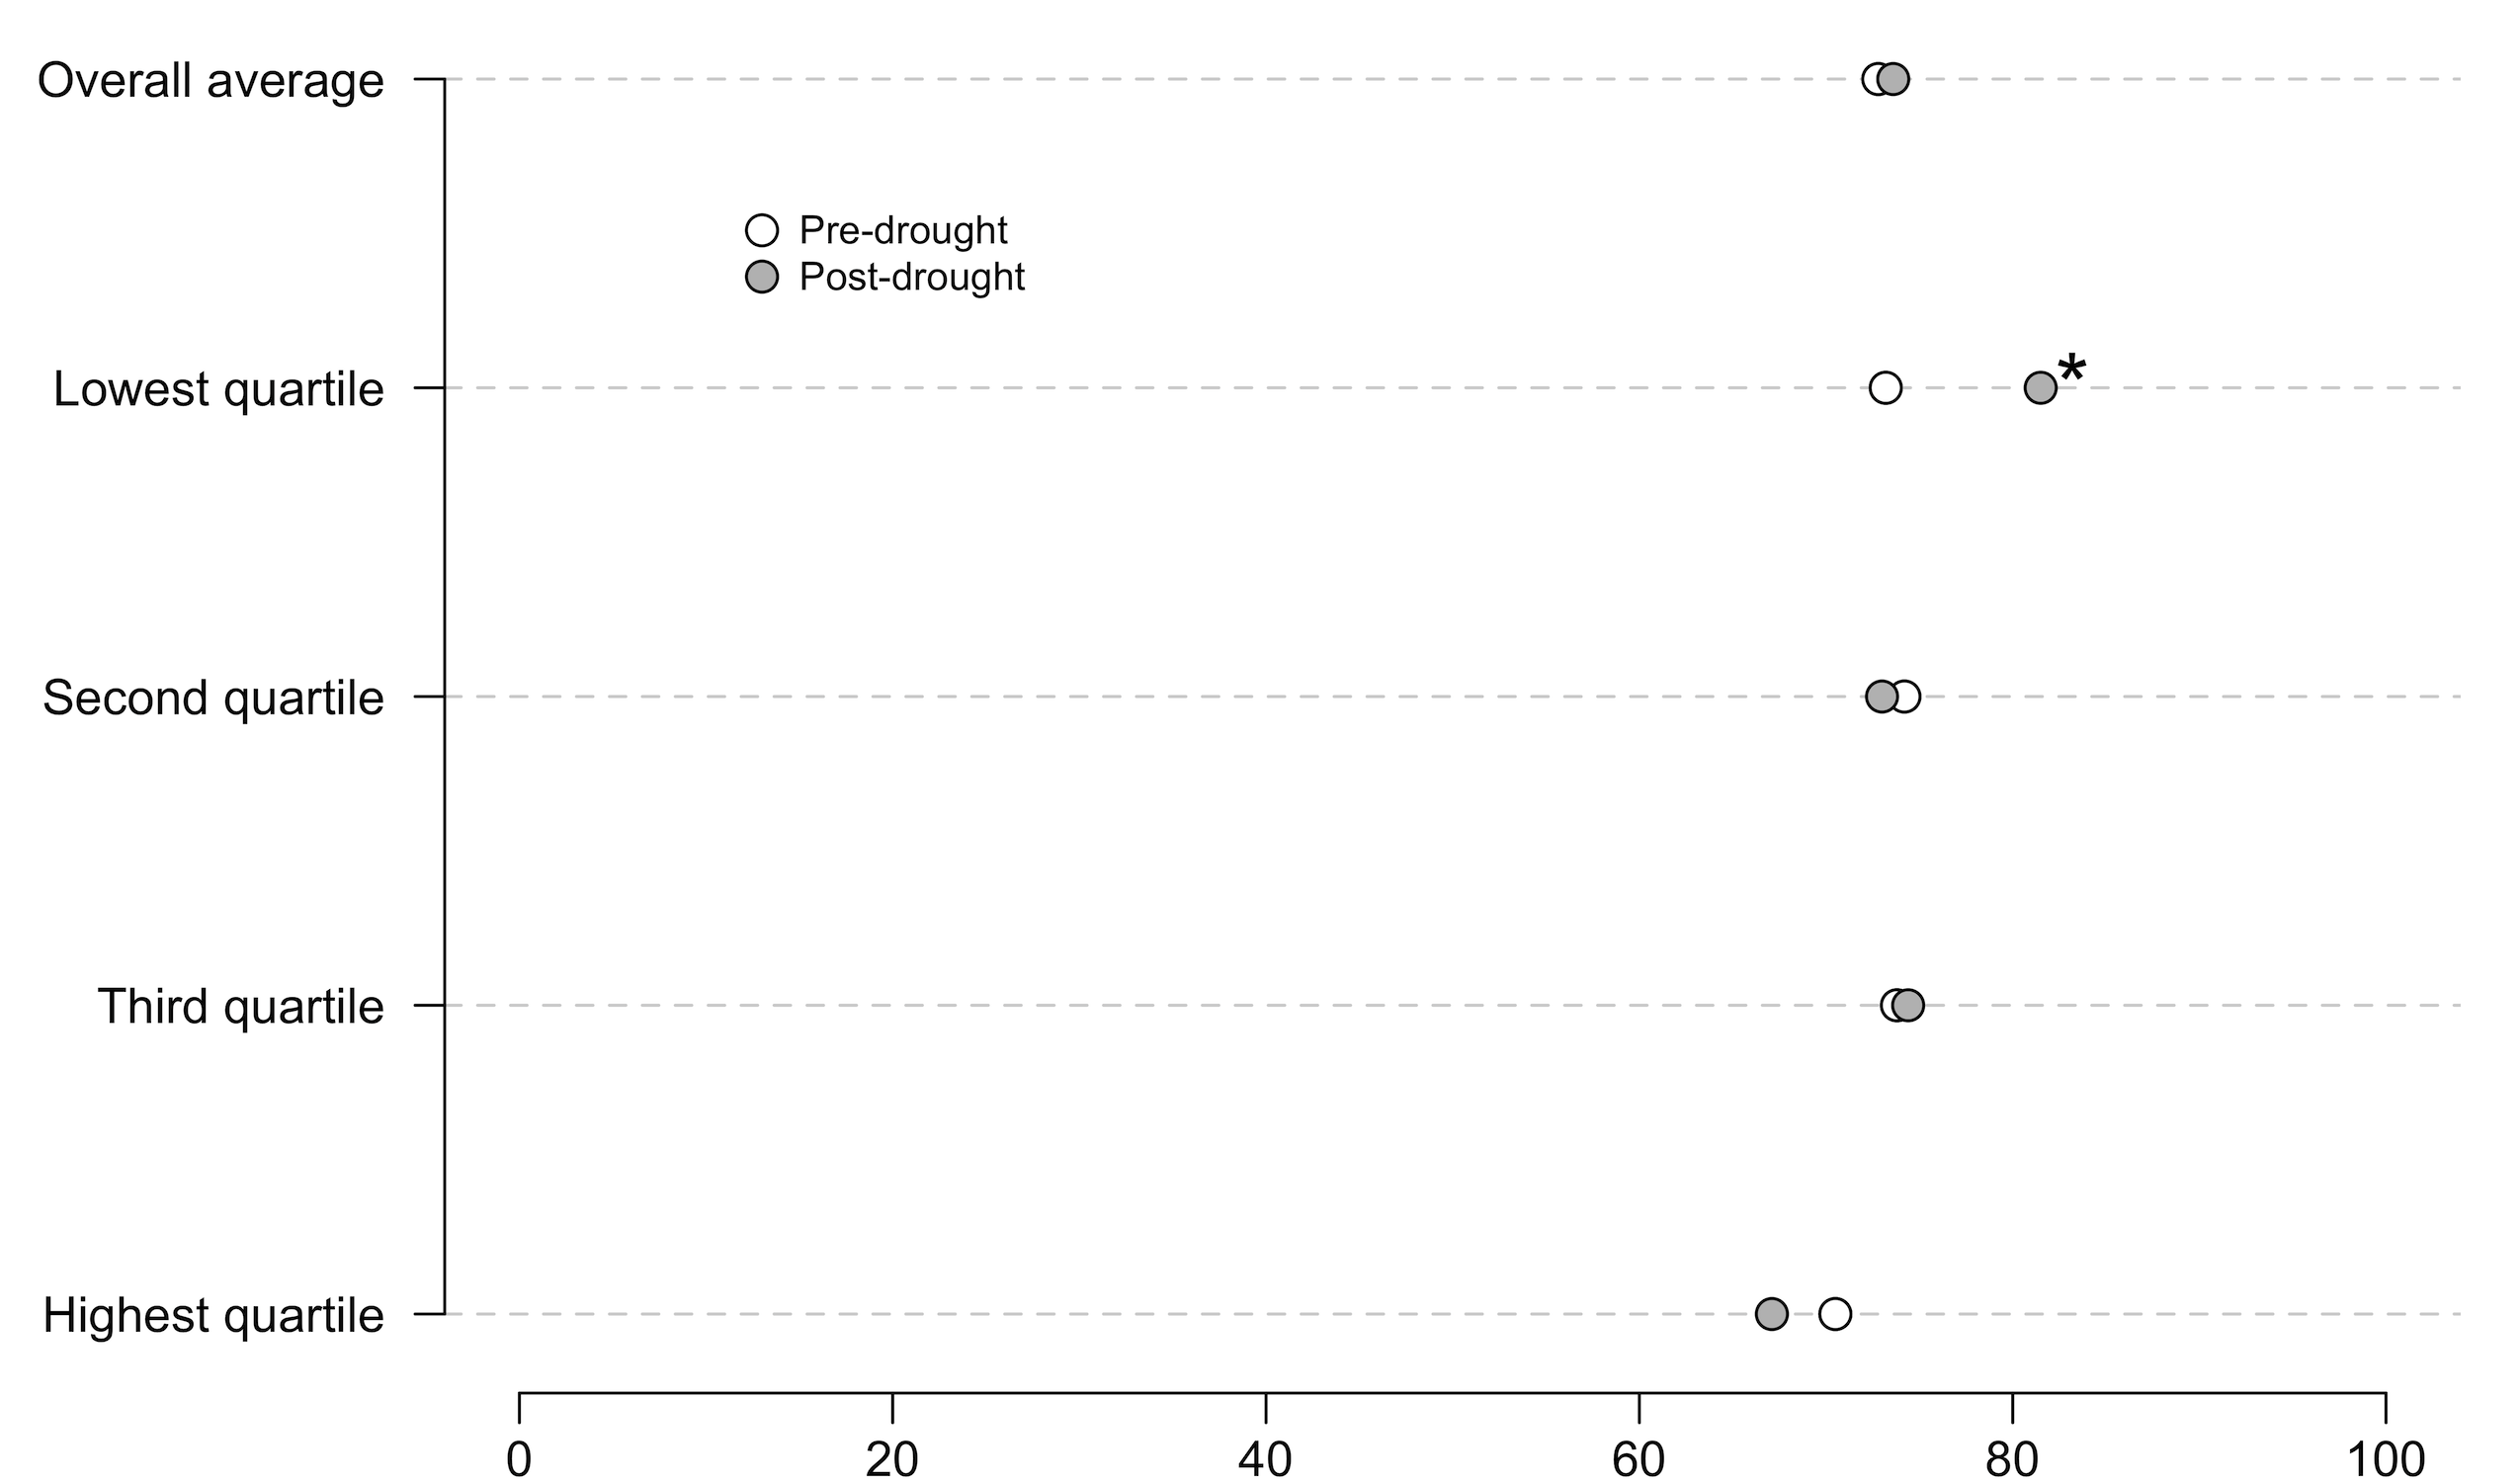 Standard dot plot comparing climate change beliefs pre- and post-drought